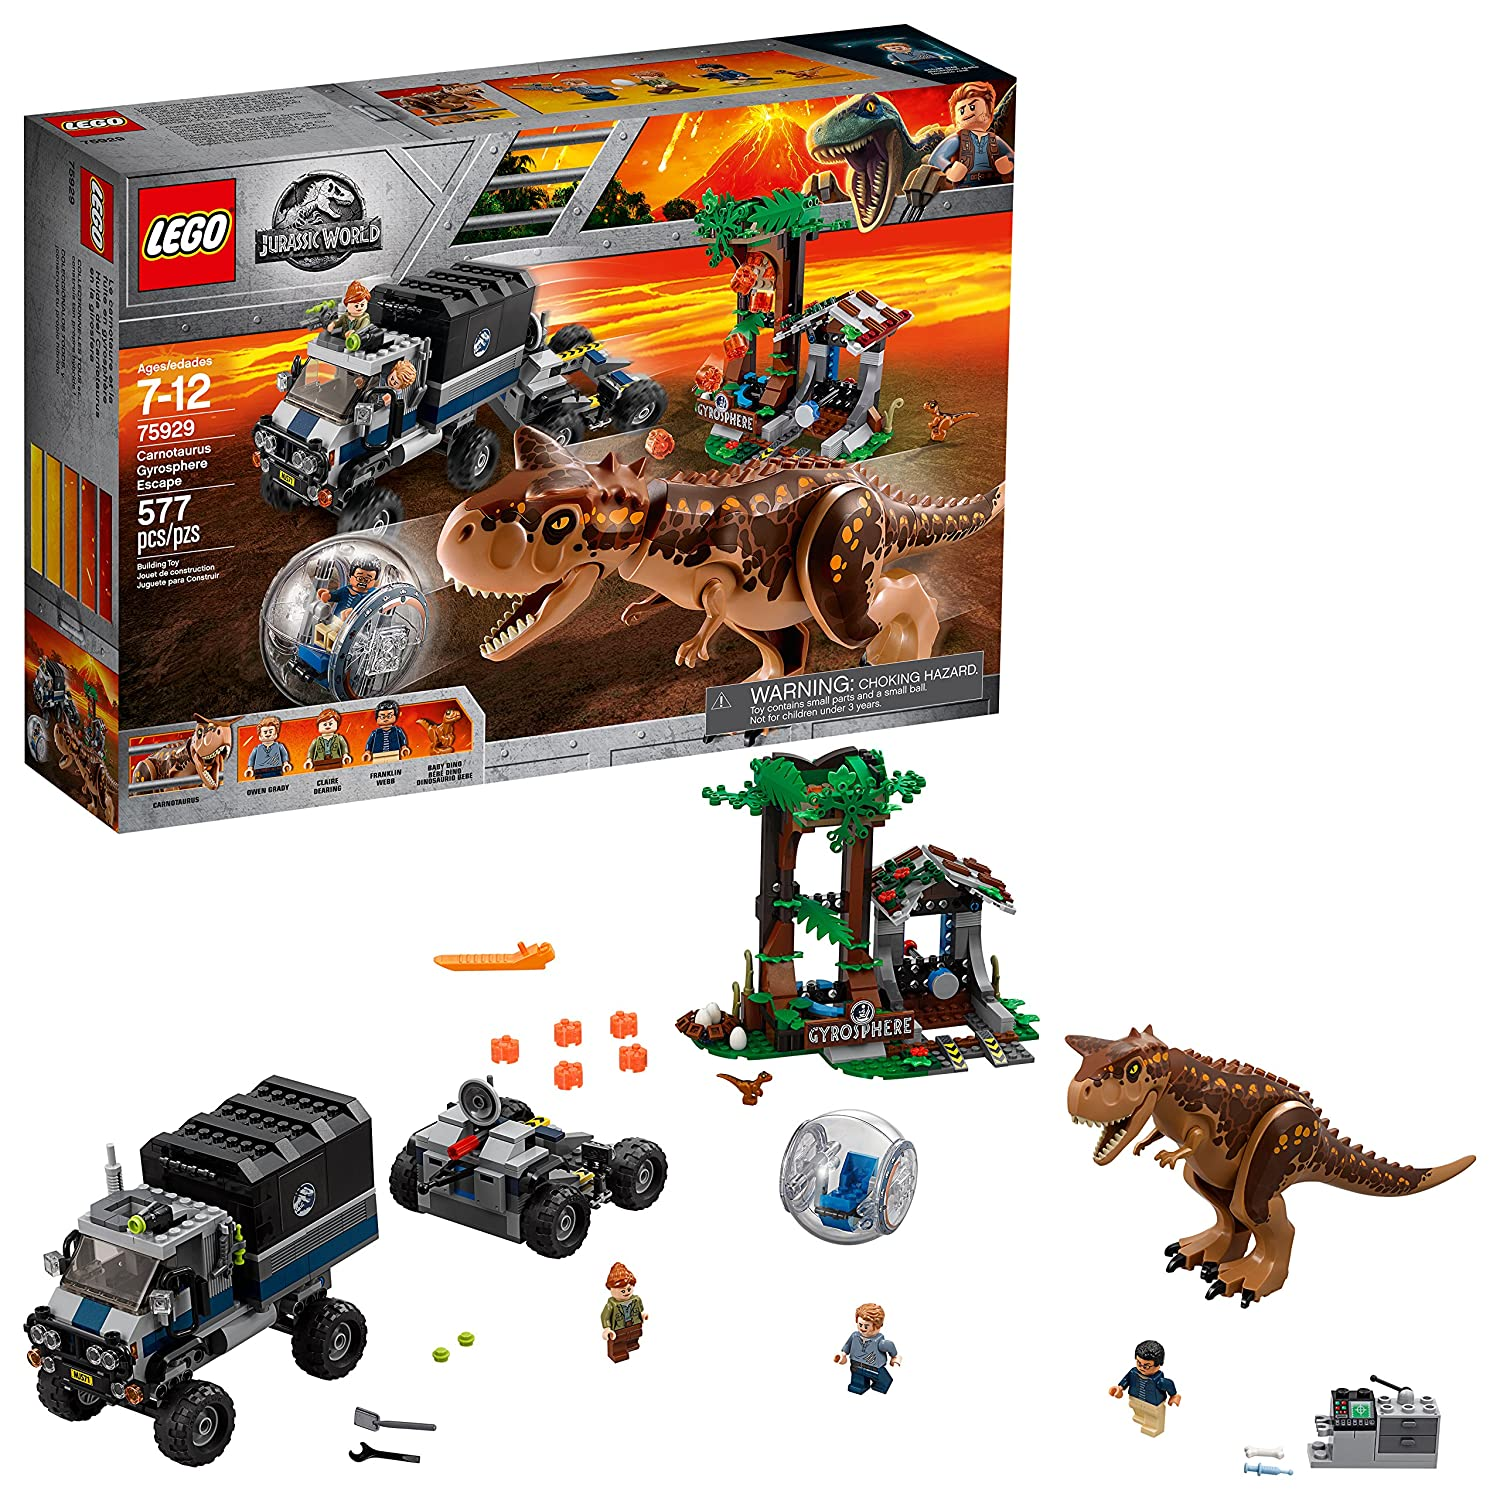 LEGO Jurassic World Carnotaurus Gyrosphere Escape 75929 Building Kit (577 Pieces)